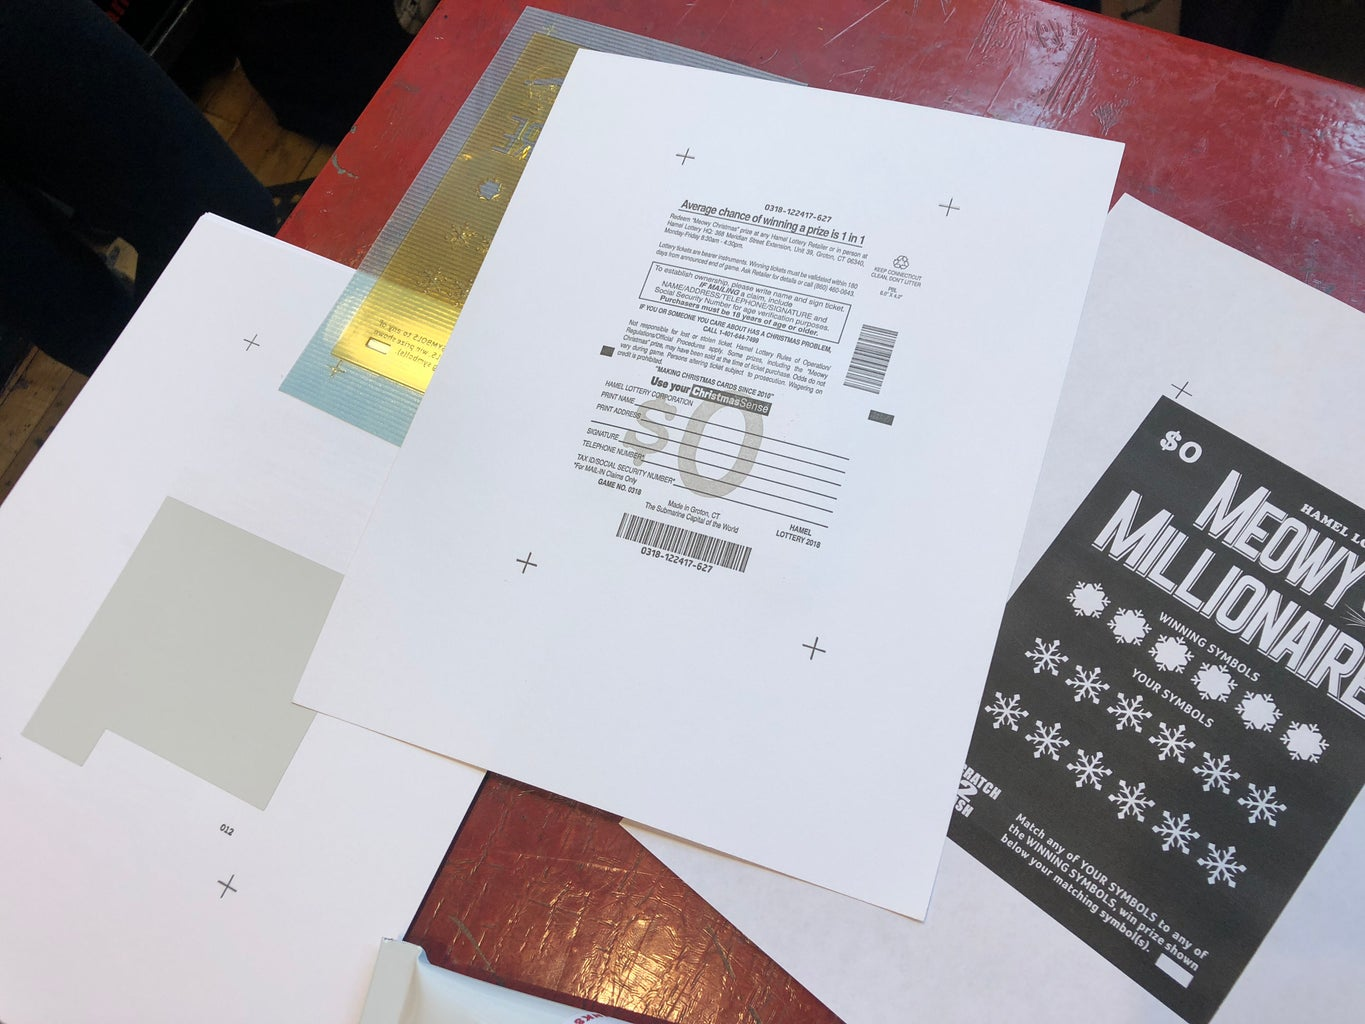 Cut and Apply the Scratch-off Sticker